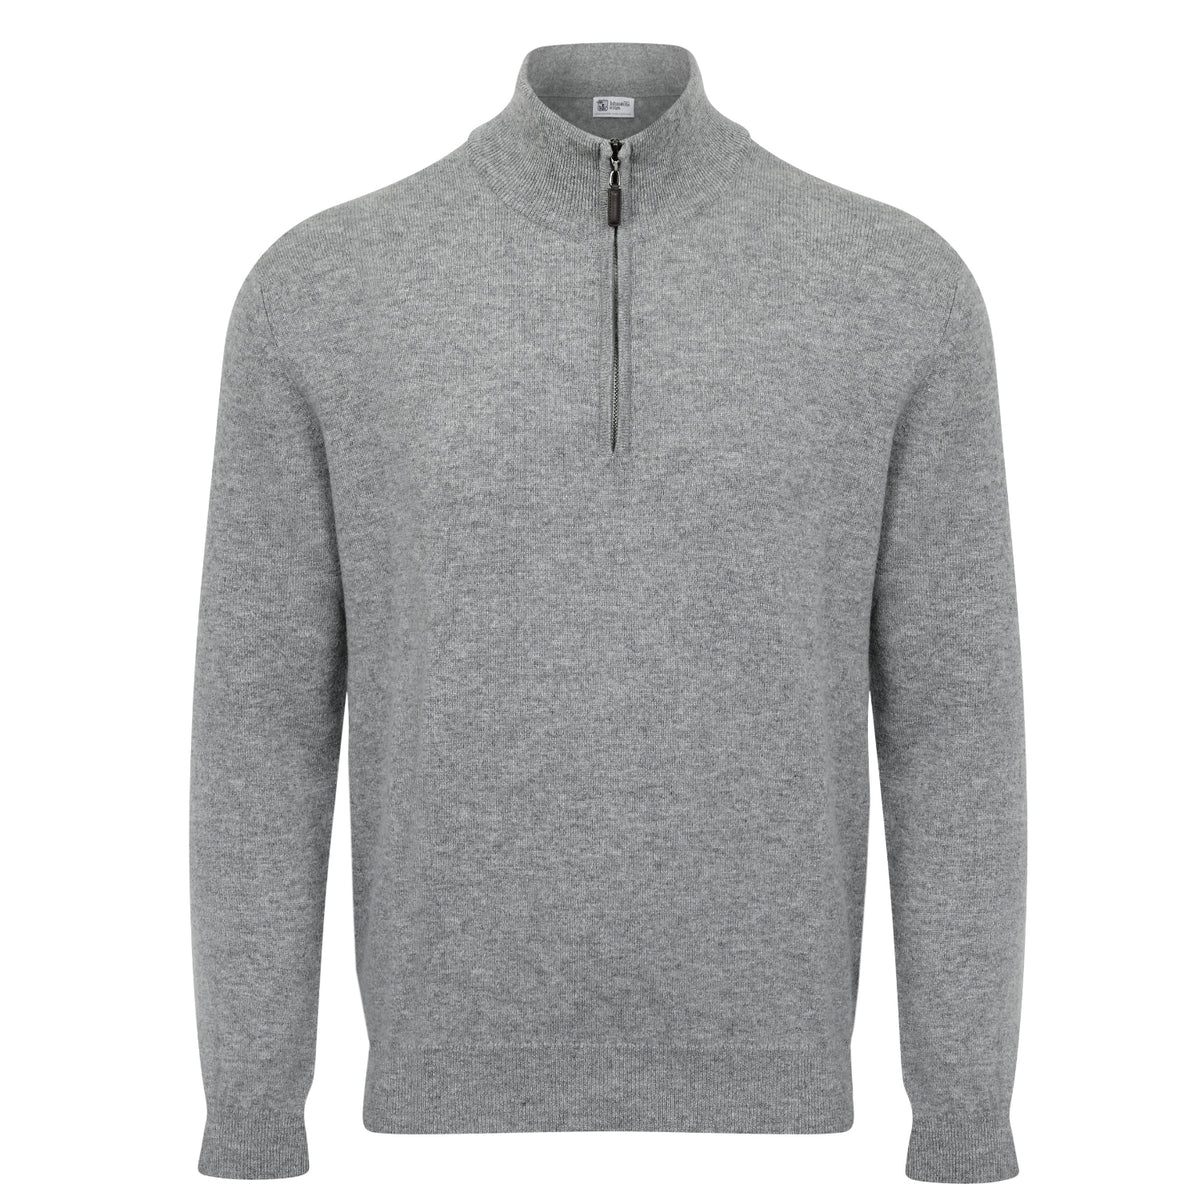 Johnstons of Elgin | Mens 2-Ply Cashmere Zip Turtle Neck | Light Grey | Shop now at The Cashmere Choice | London